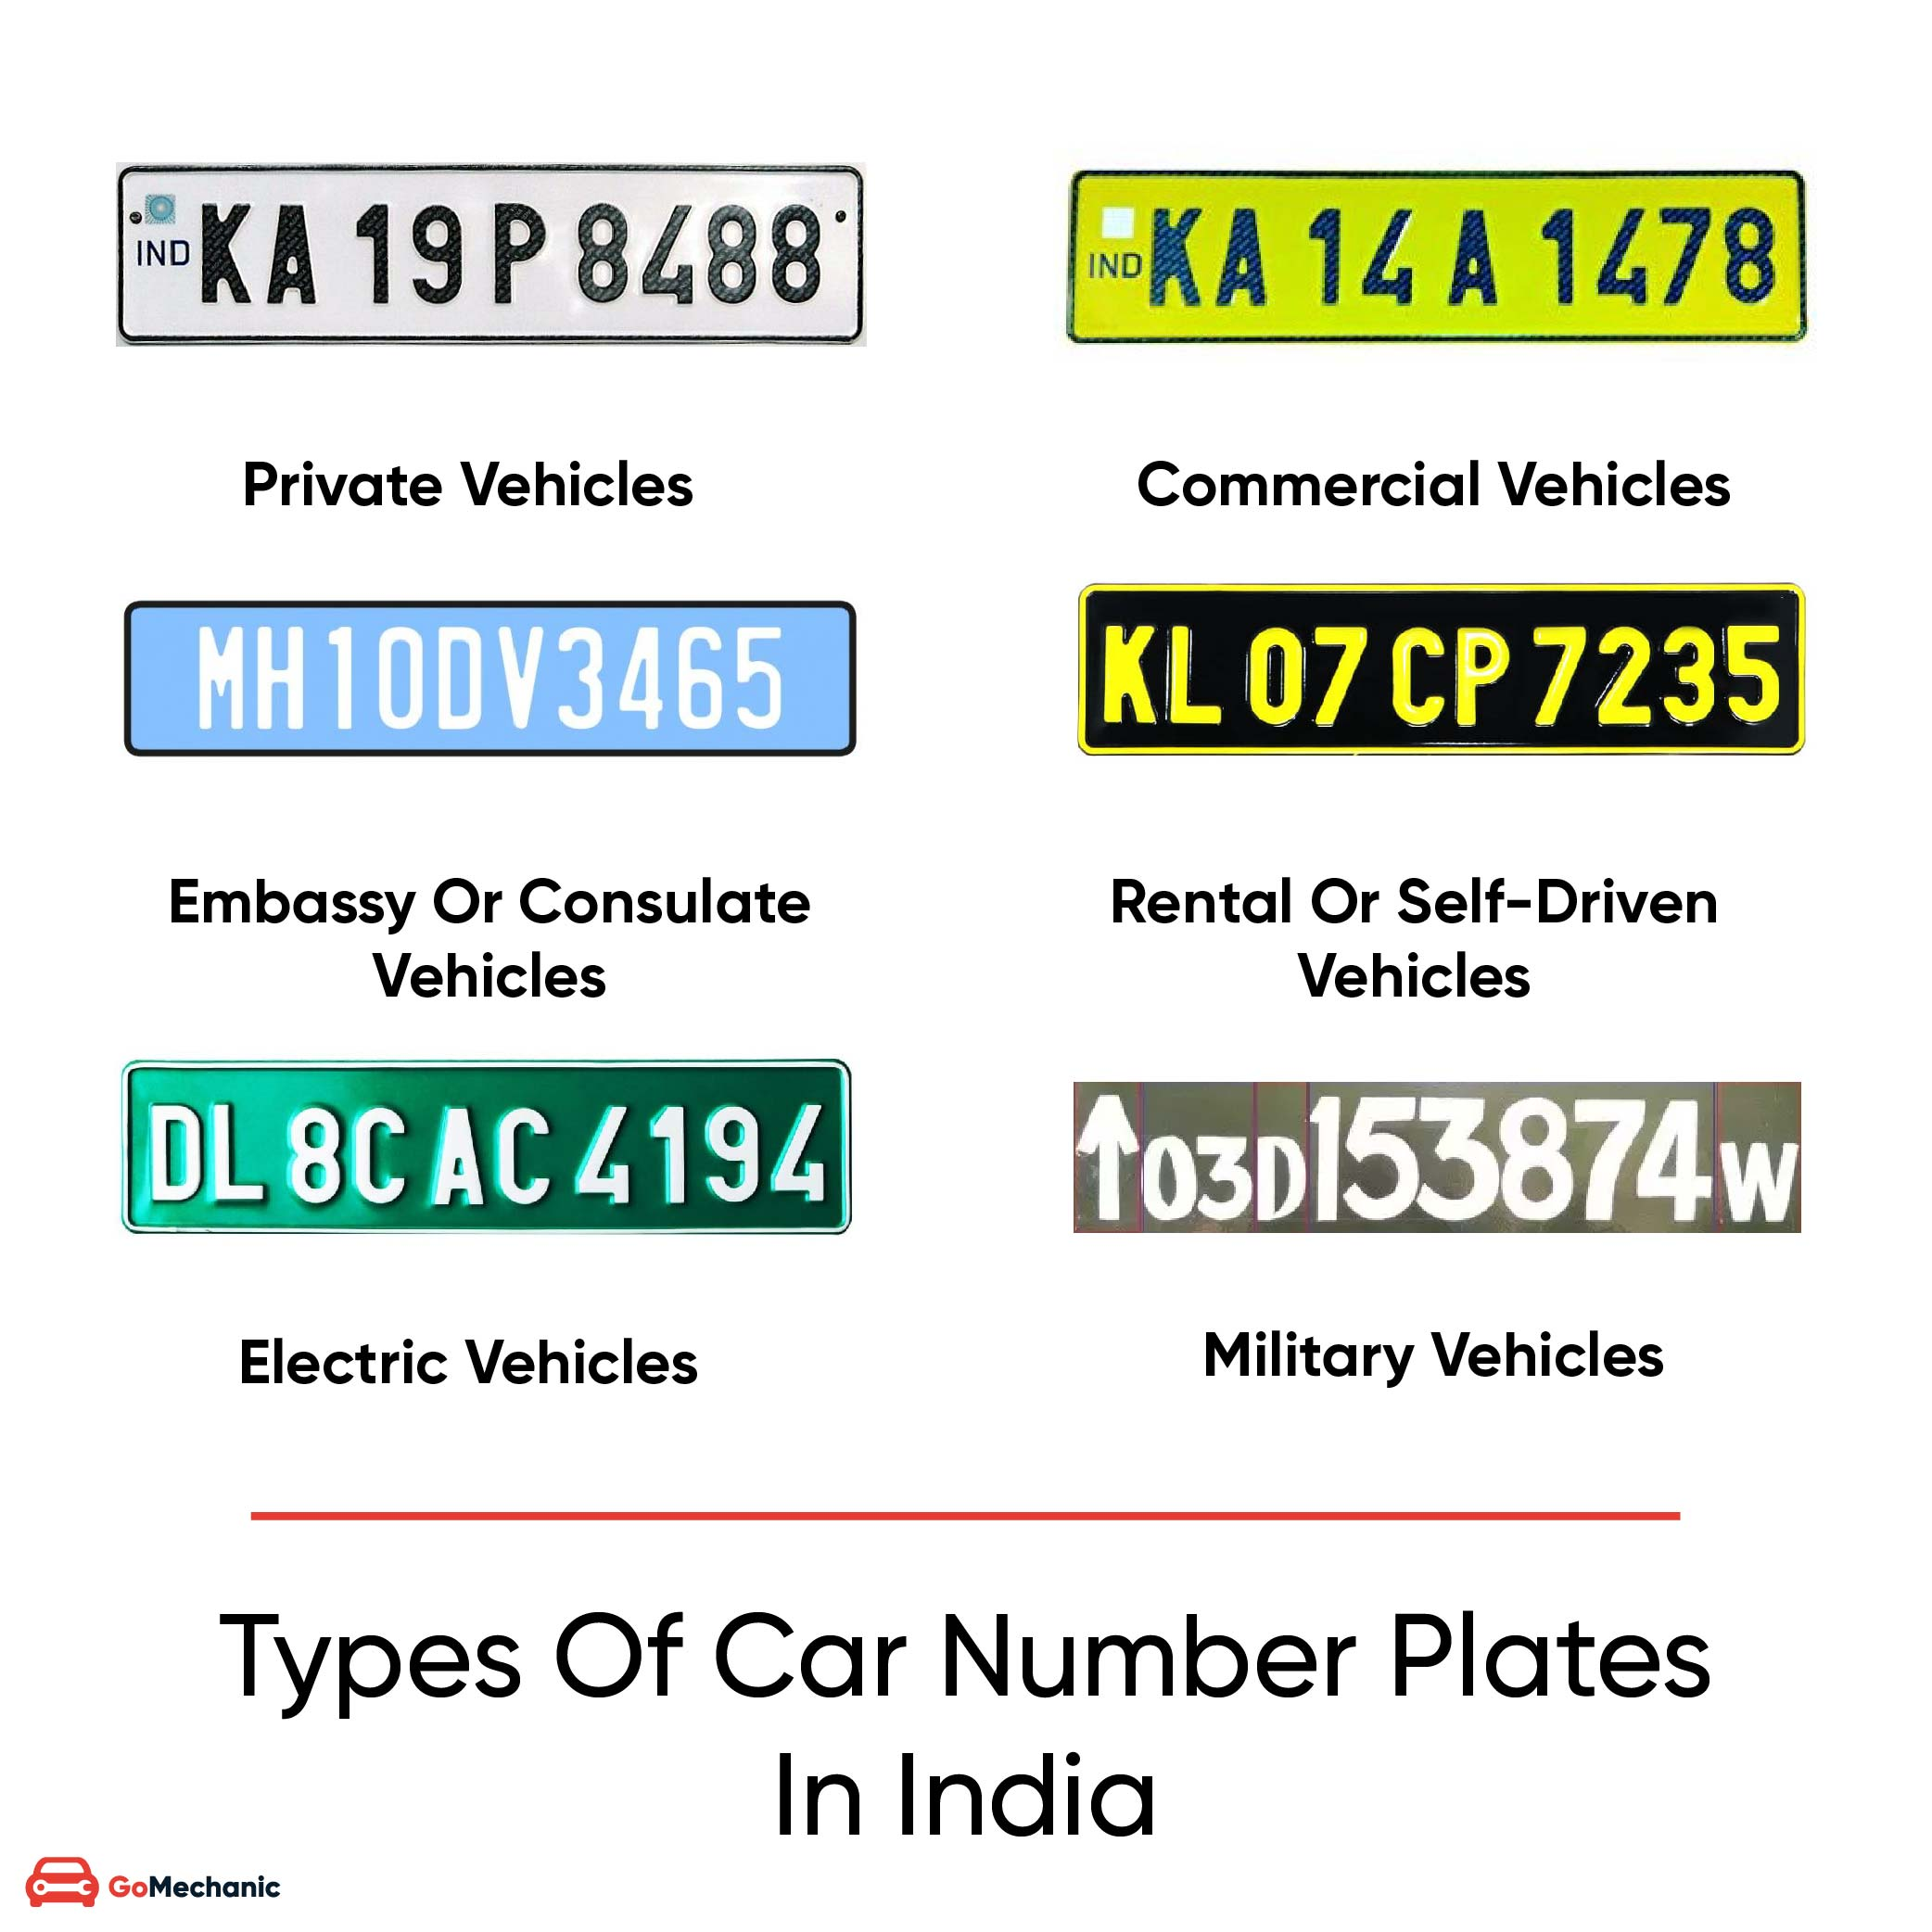 Types Of Car Number Plates In India